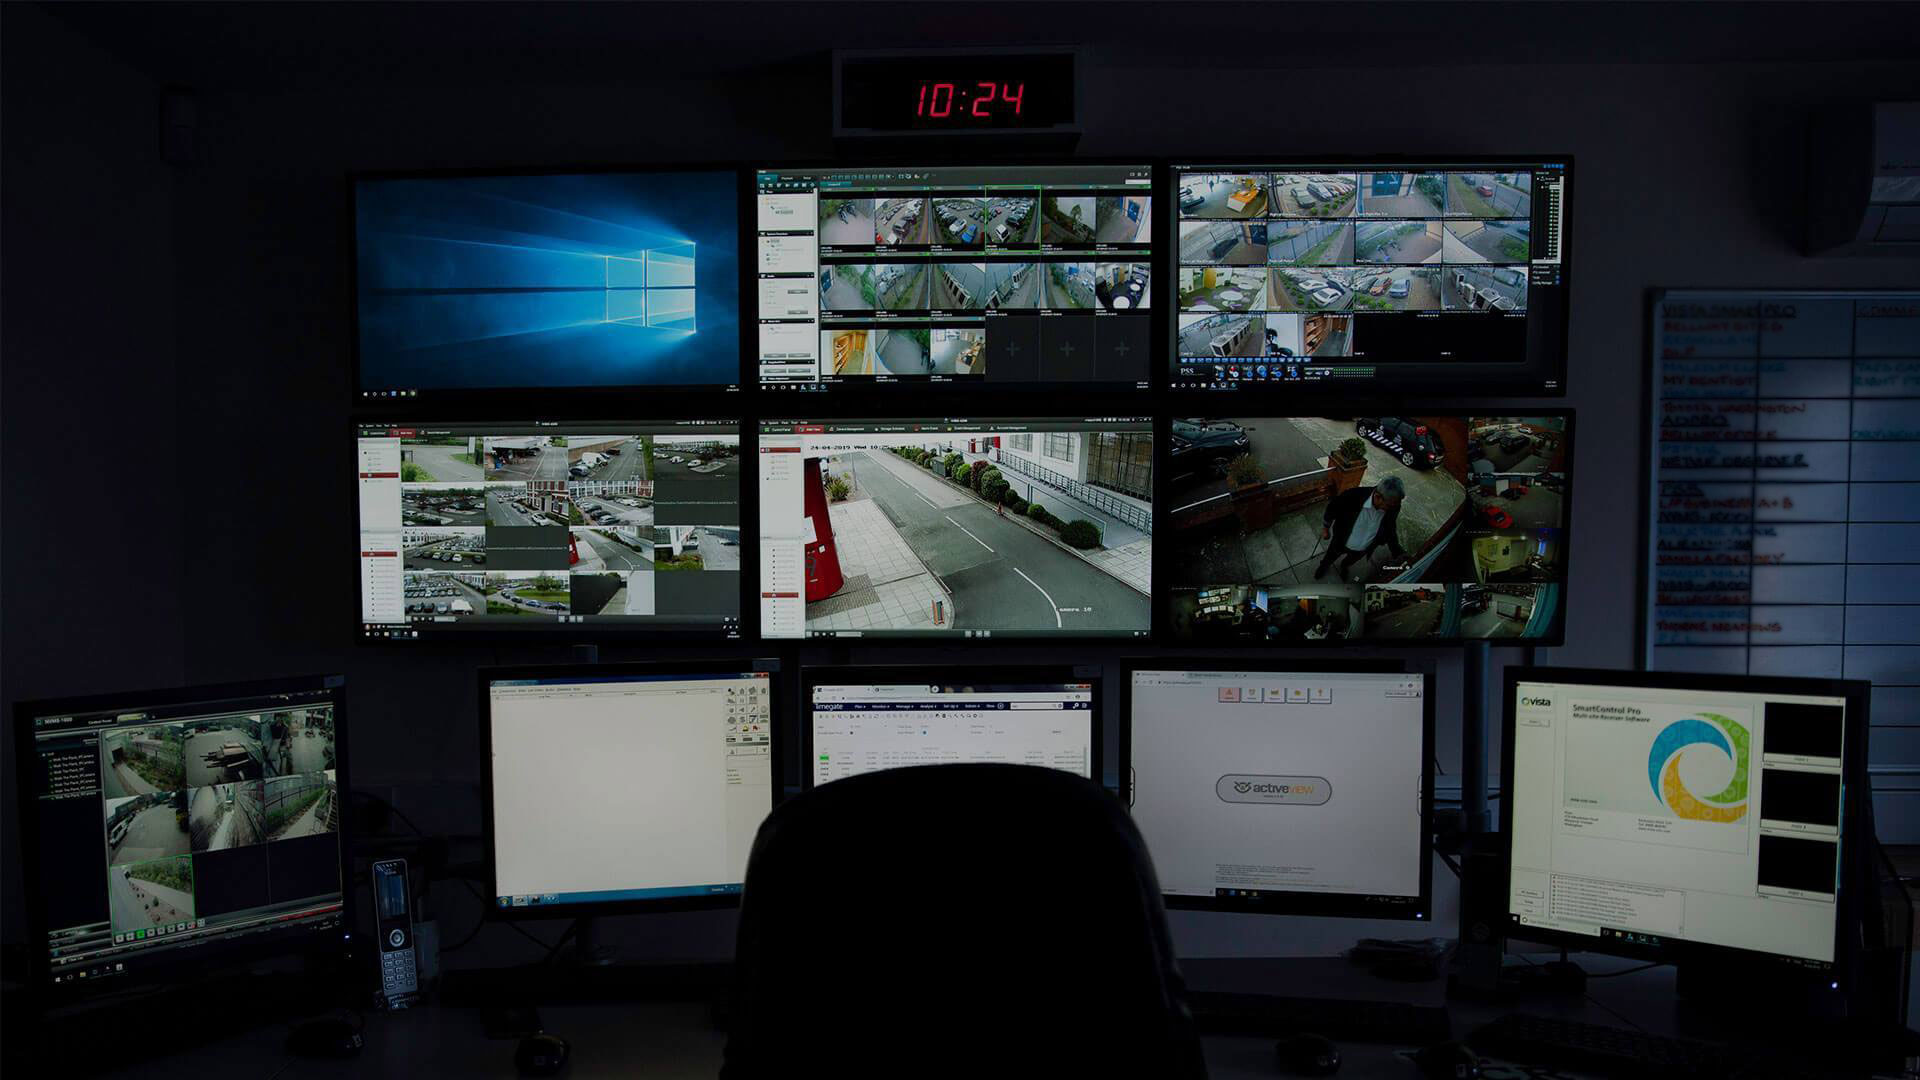 Marpol-Security-Control-Room-cameras